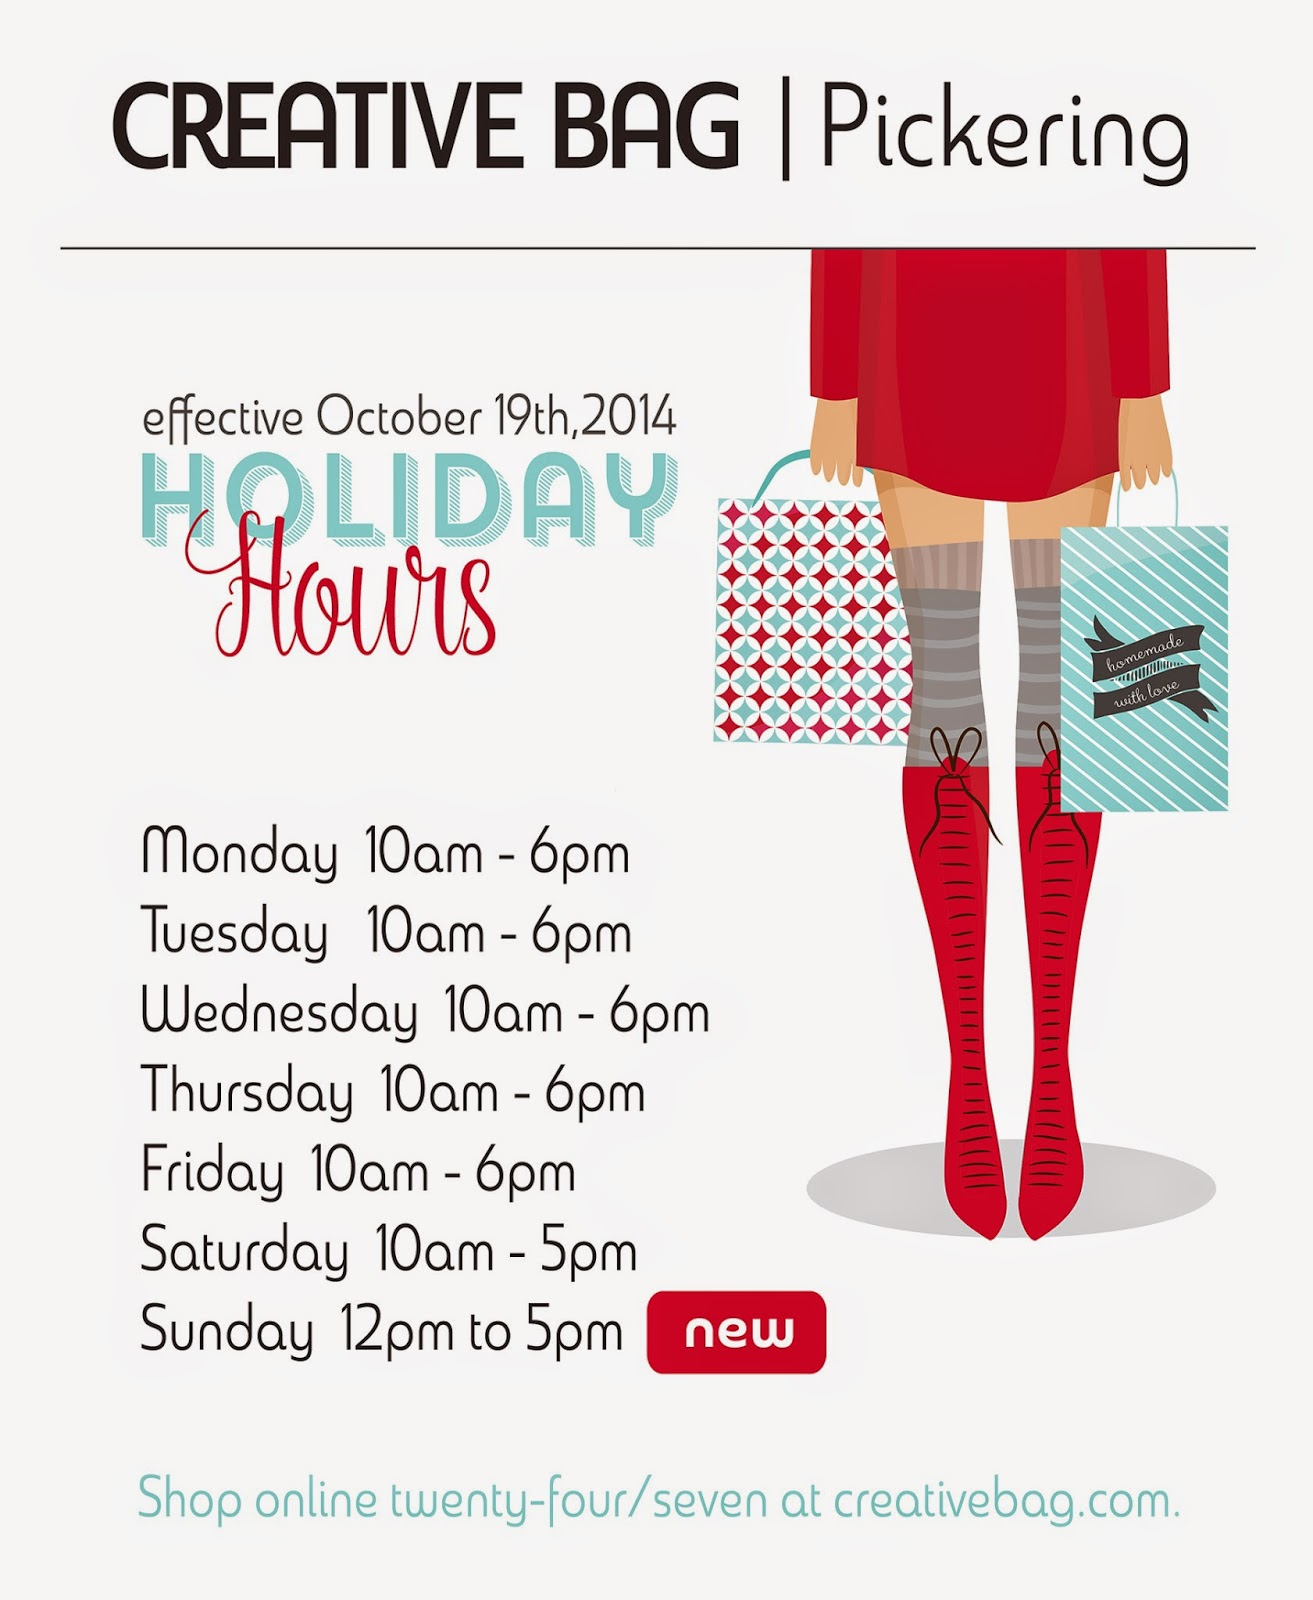 Creative Bag's Pickering store starts holiday hours in October